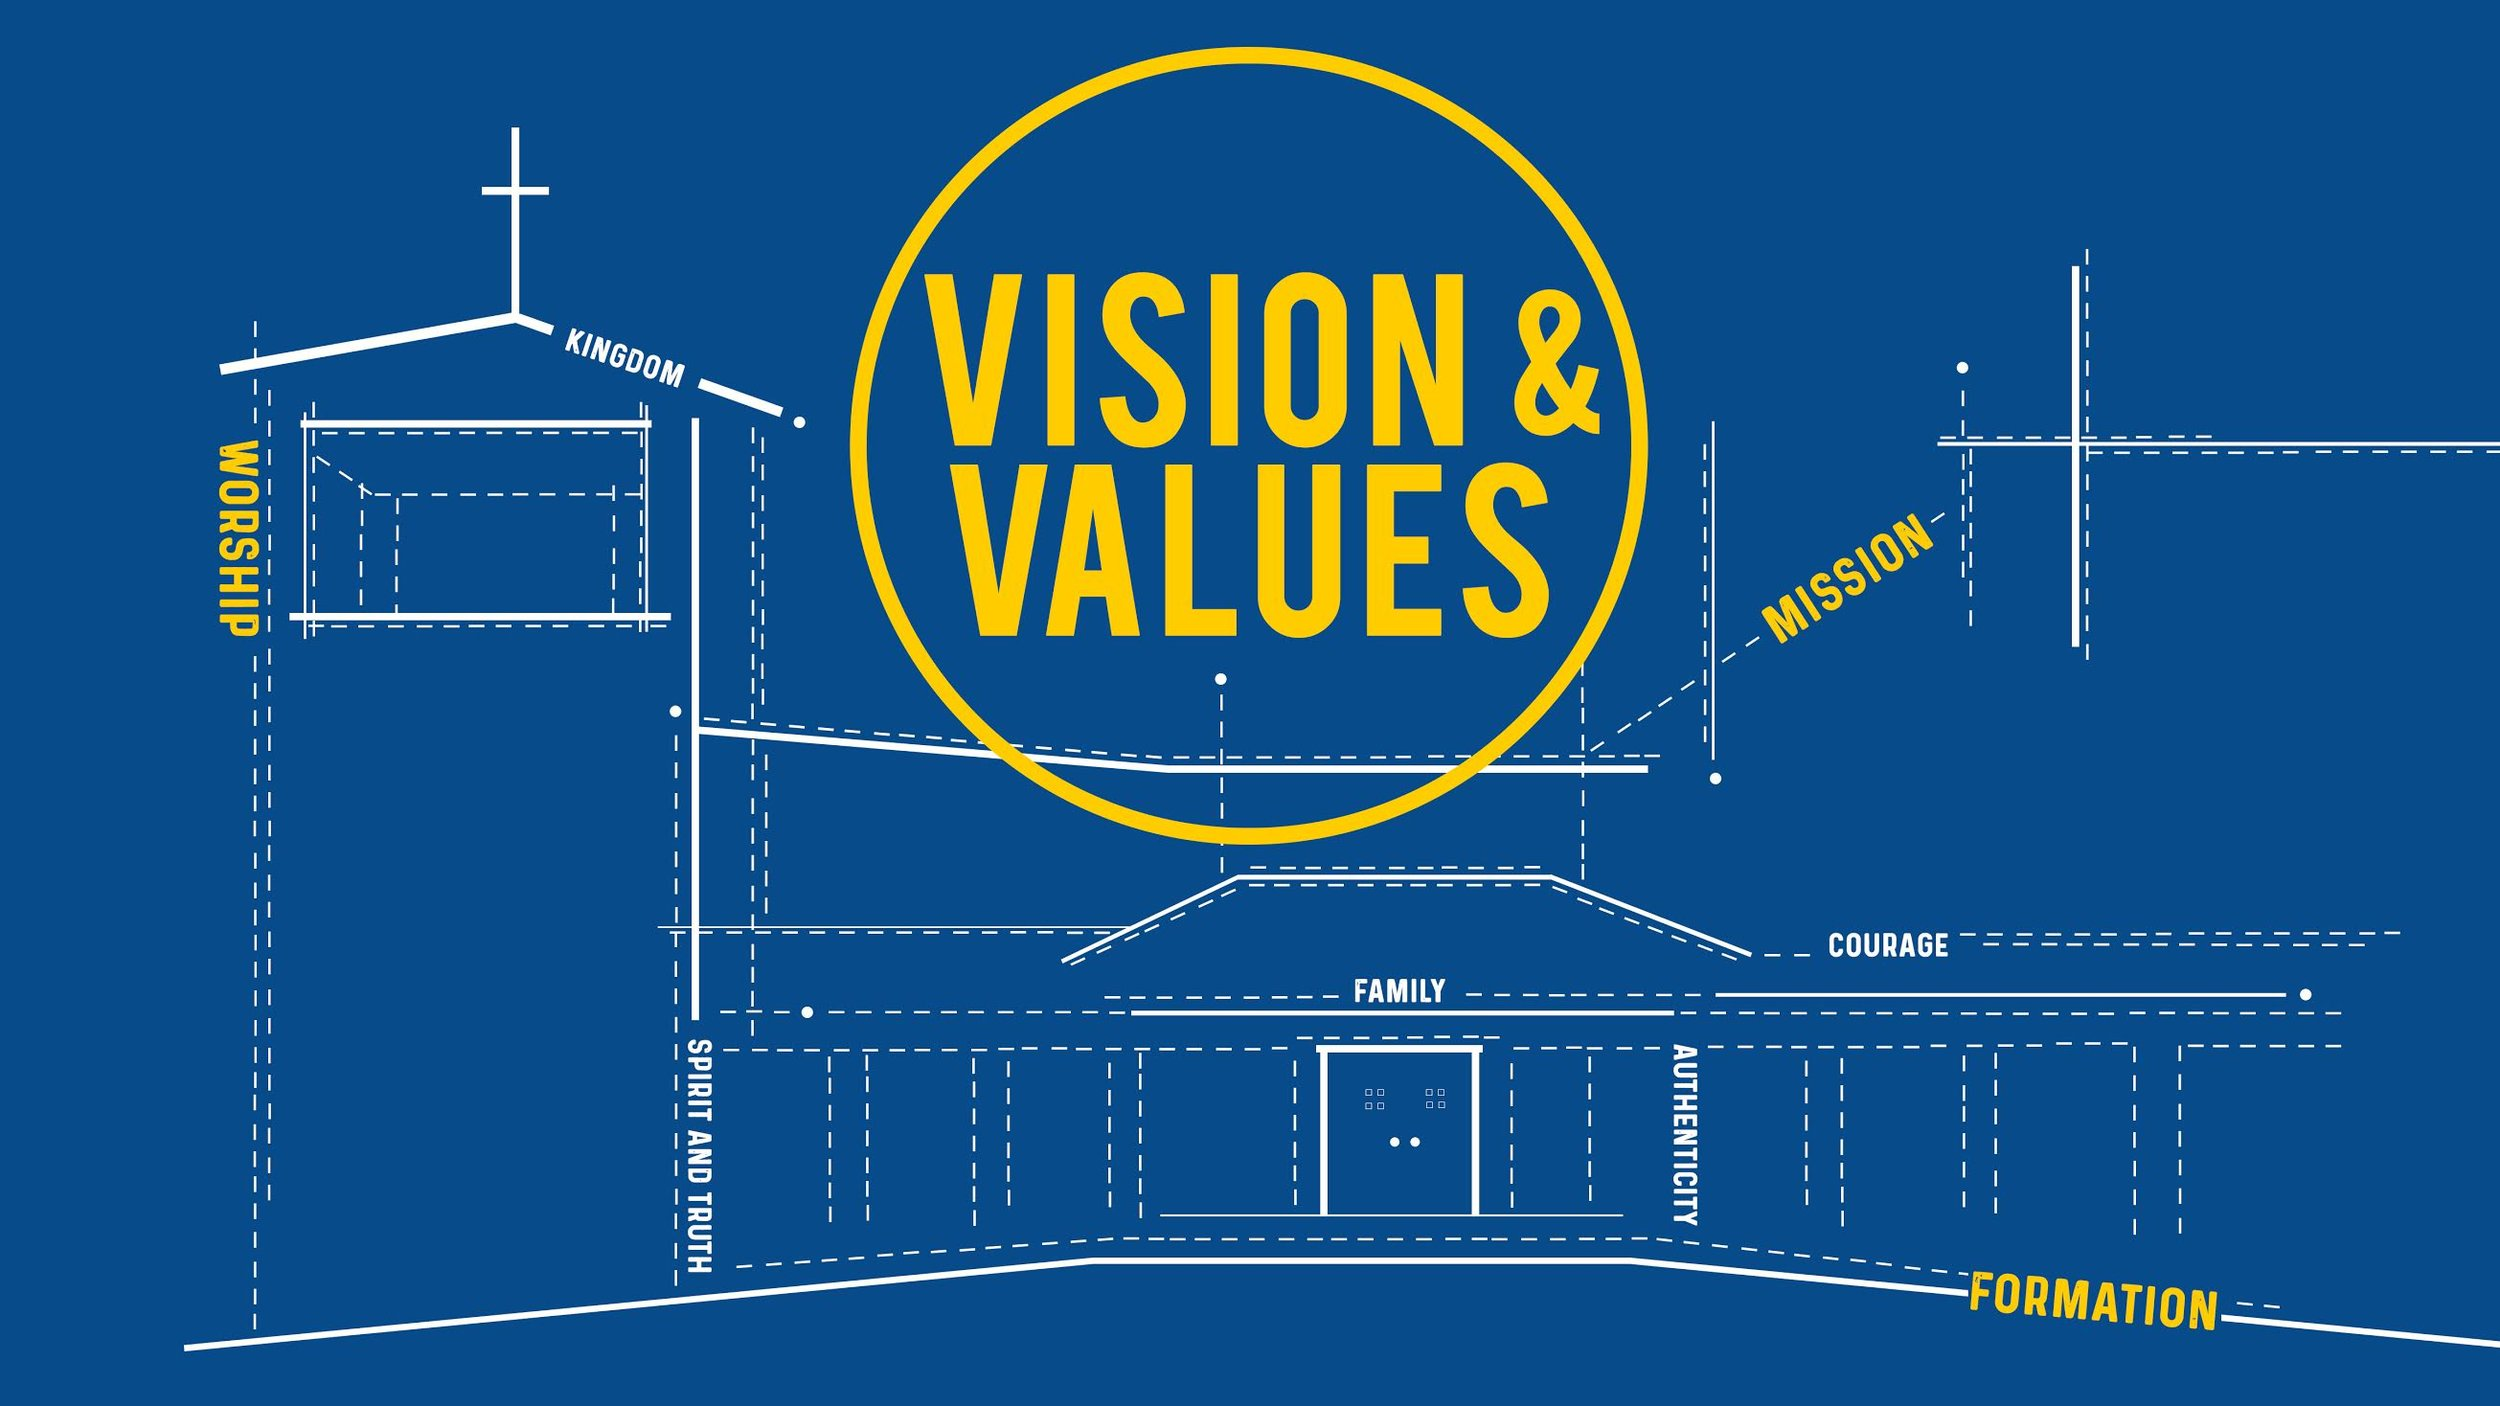 Vision & Values: (April)   We are in an exciting season of fresh purpose and vision at Our Lord's. In this brief series (April 7, 14, 28), the Leadership Team will discuss aspects of OLCC's new mission statement:  We are a community of worship and formation on mission with Jesus.  We will also share practical vision for growing in each of these areas, and values that undergird this vision and express who we are as a church.